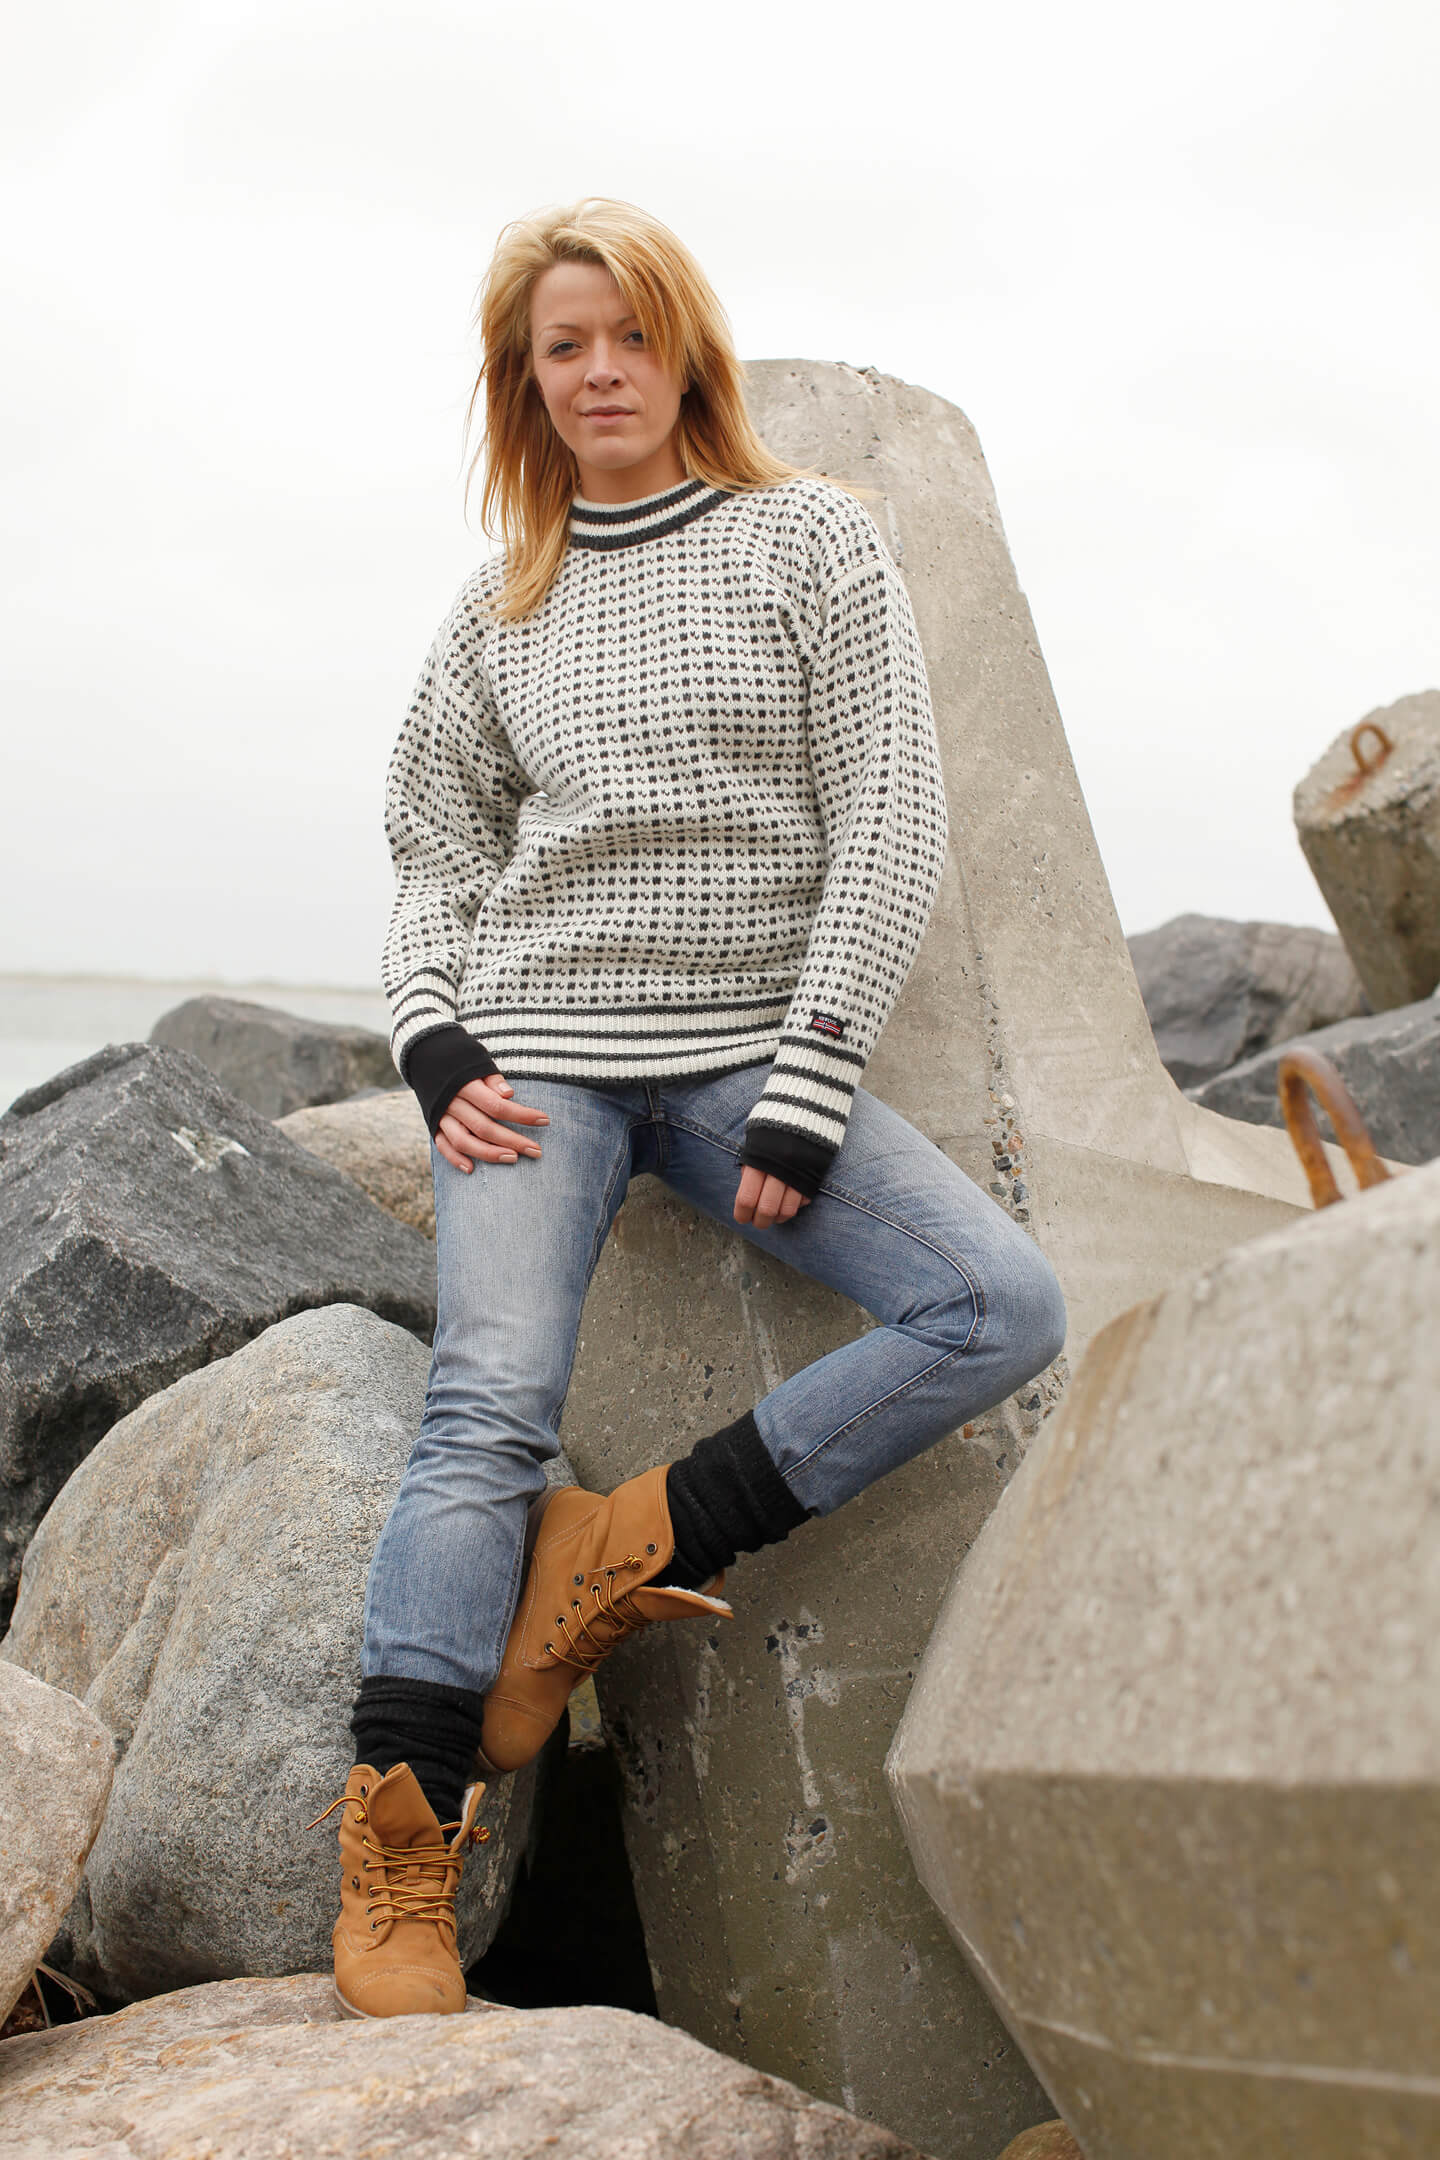 Faroese Jumper Knitting Patterns : Faroese jumper of pure new wool with classic pattern from Norwool